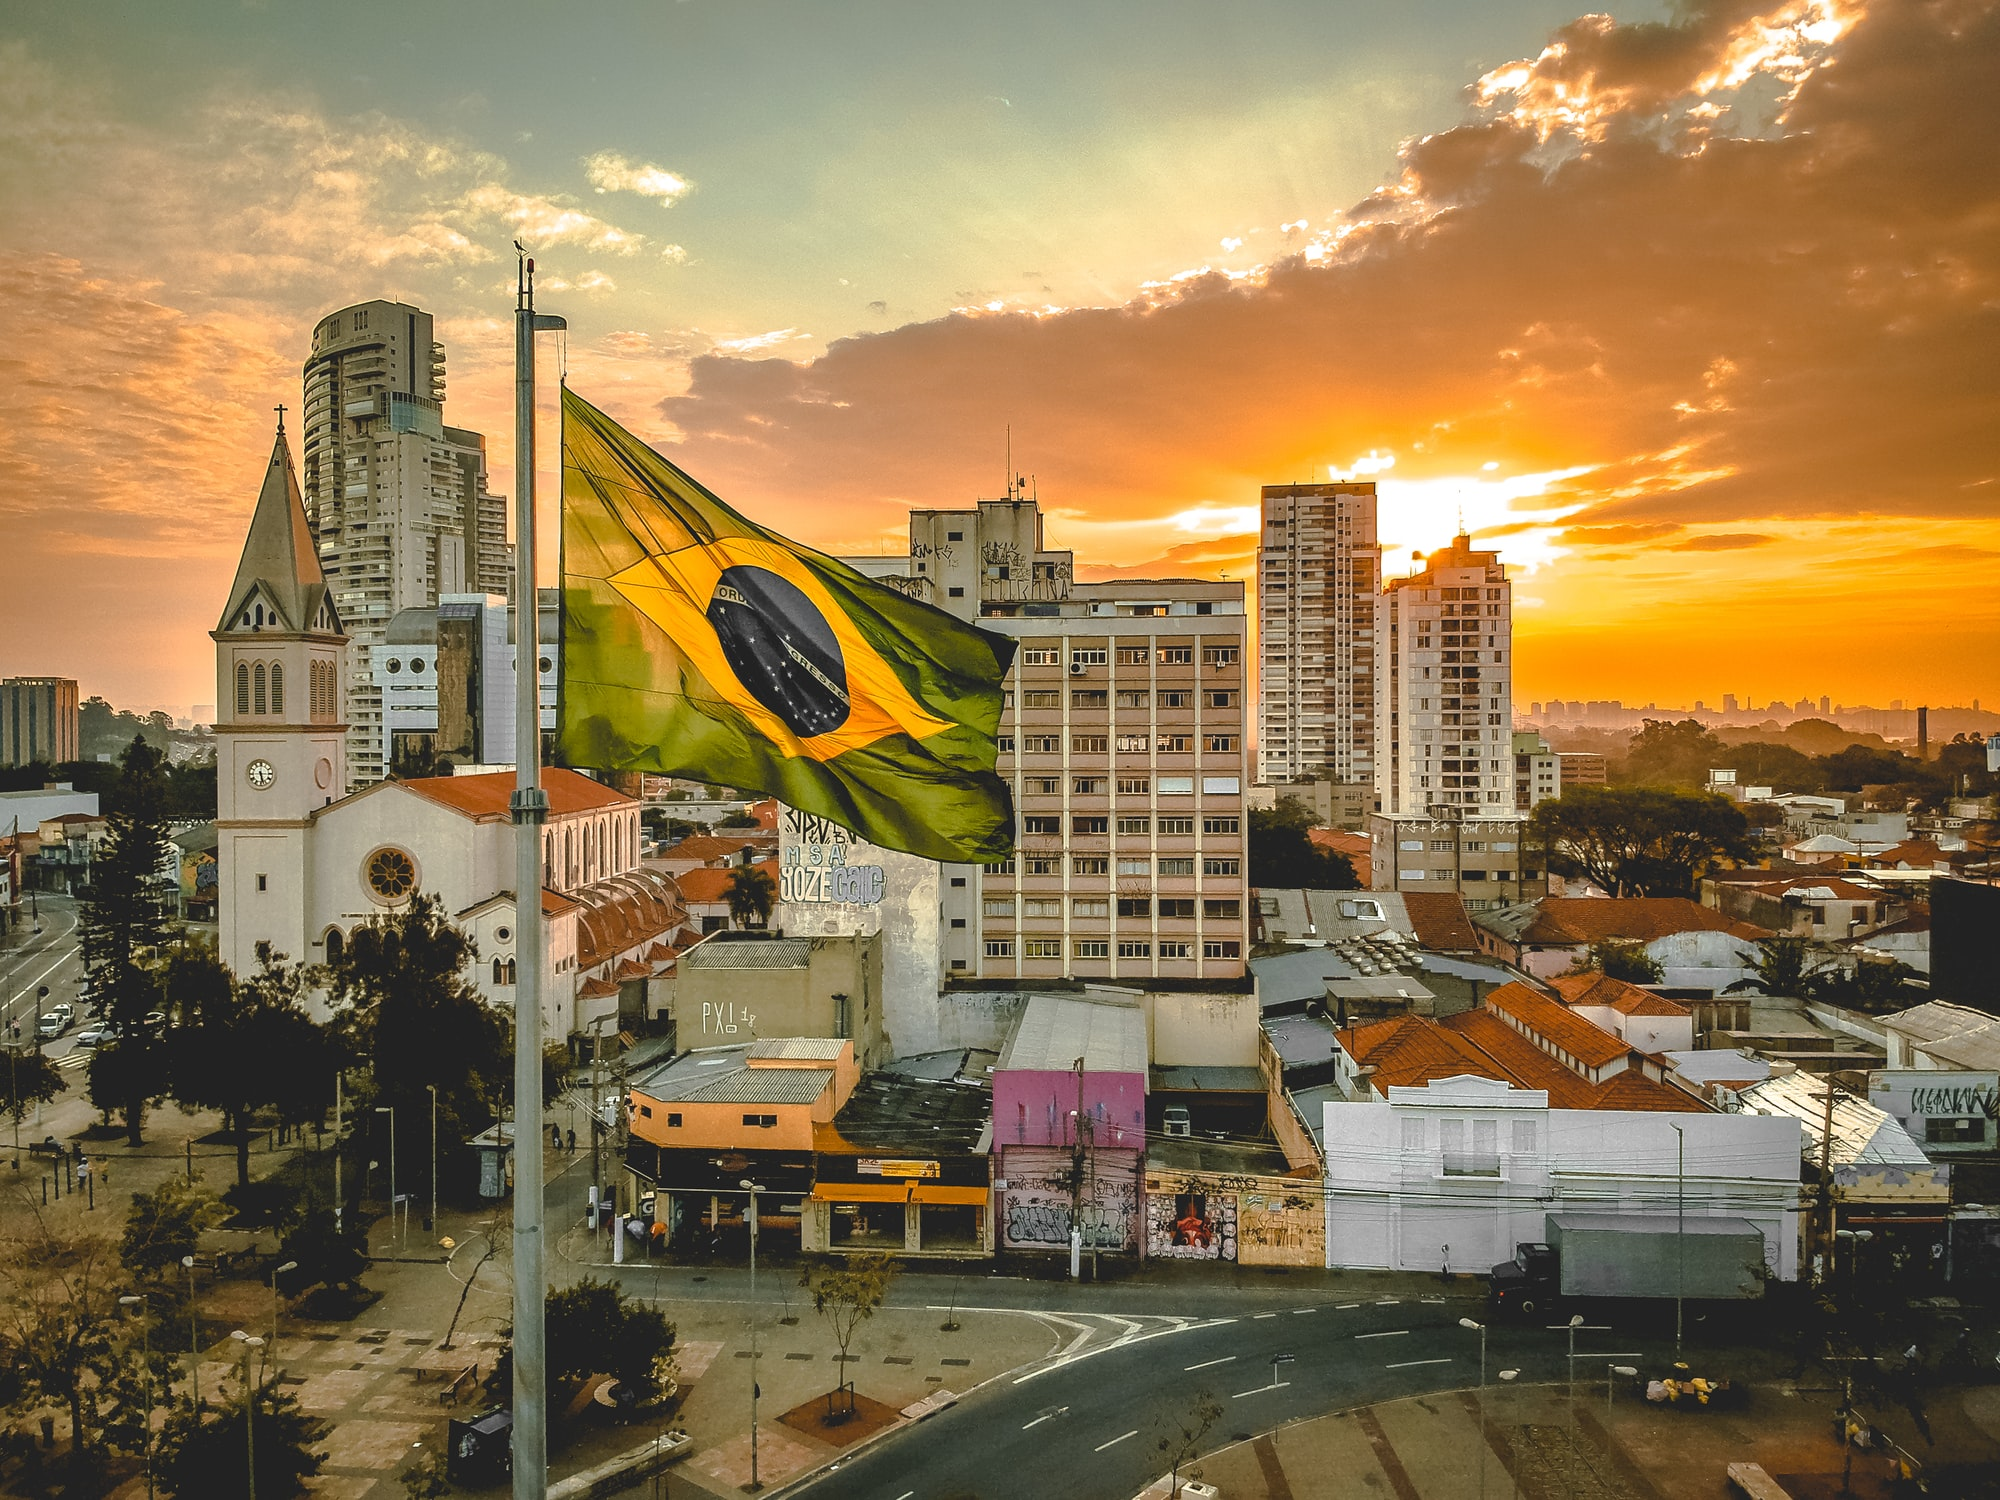 Sinovac to Begin Final Phase of COVID-19 Vaccine Testing in Brazil